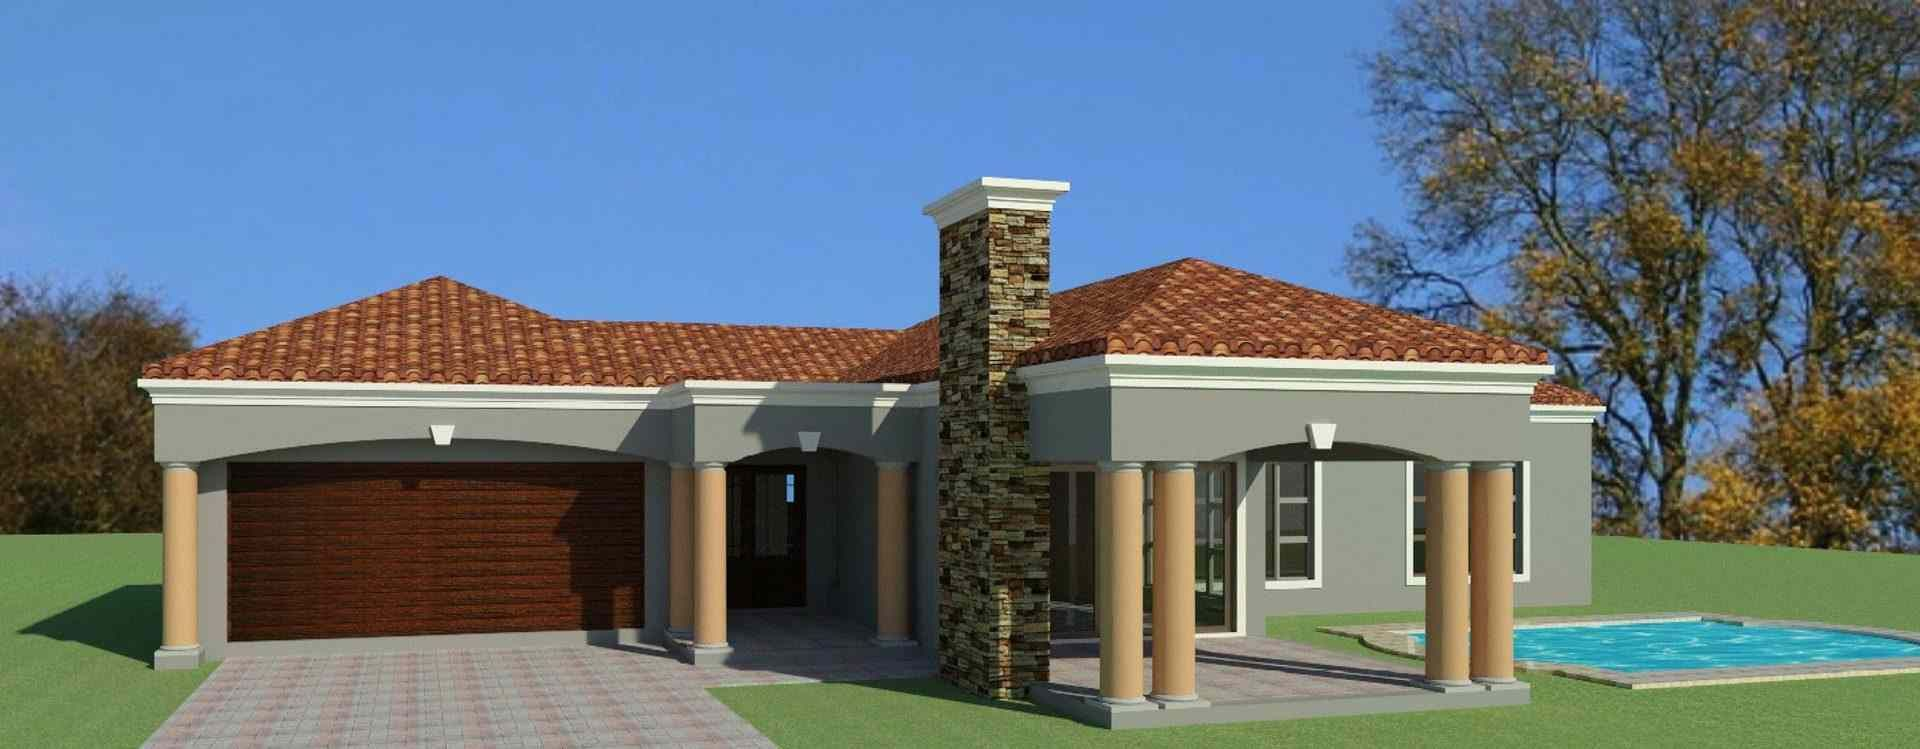 Beautiful 3 Bedroom House Plans | South African Designs ...